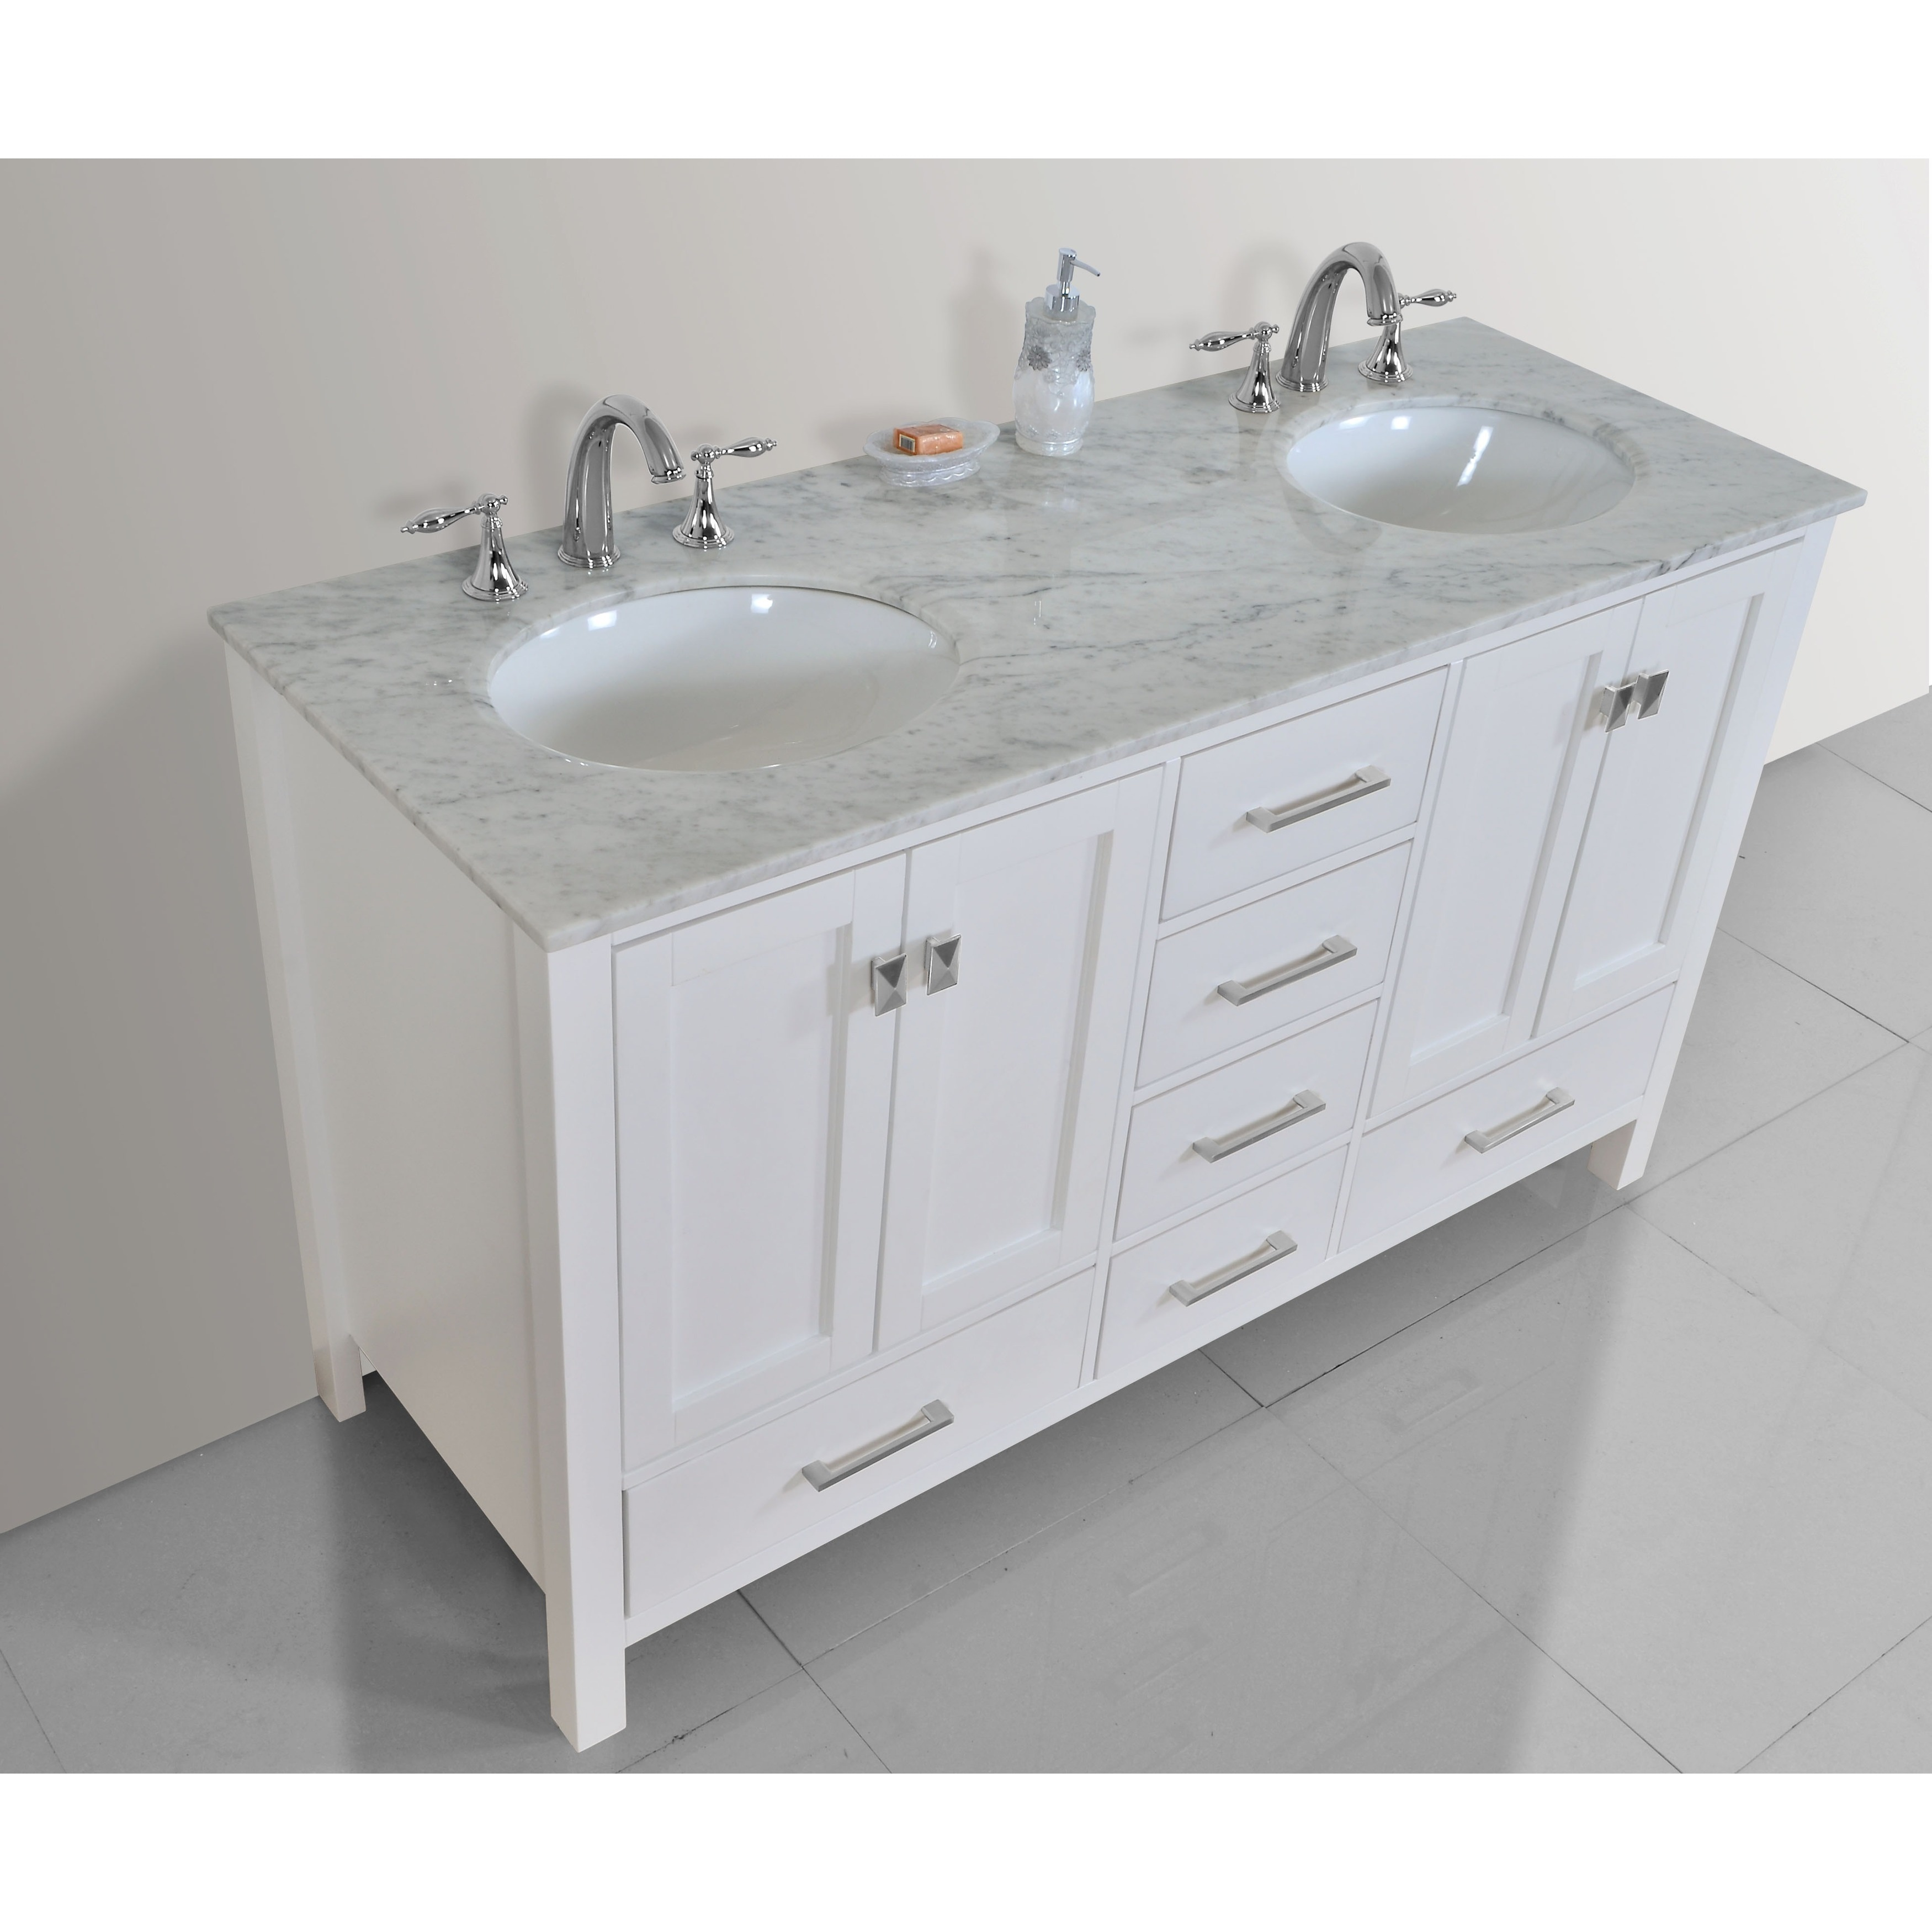 60 Inch Malibu Pure White Double Sink Bathroom Vanity Cabinet With 59 Inch  Mirror   Free Shipping Today   Overstock.com   16416197